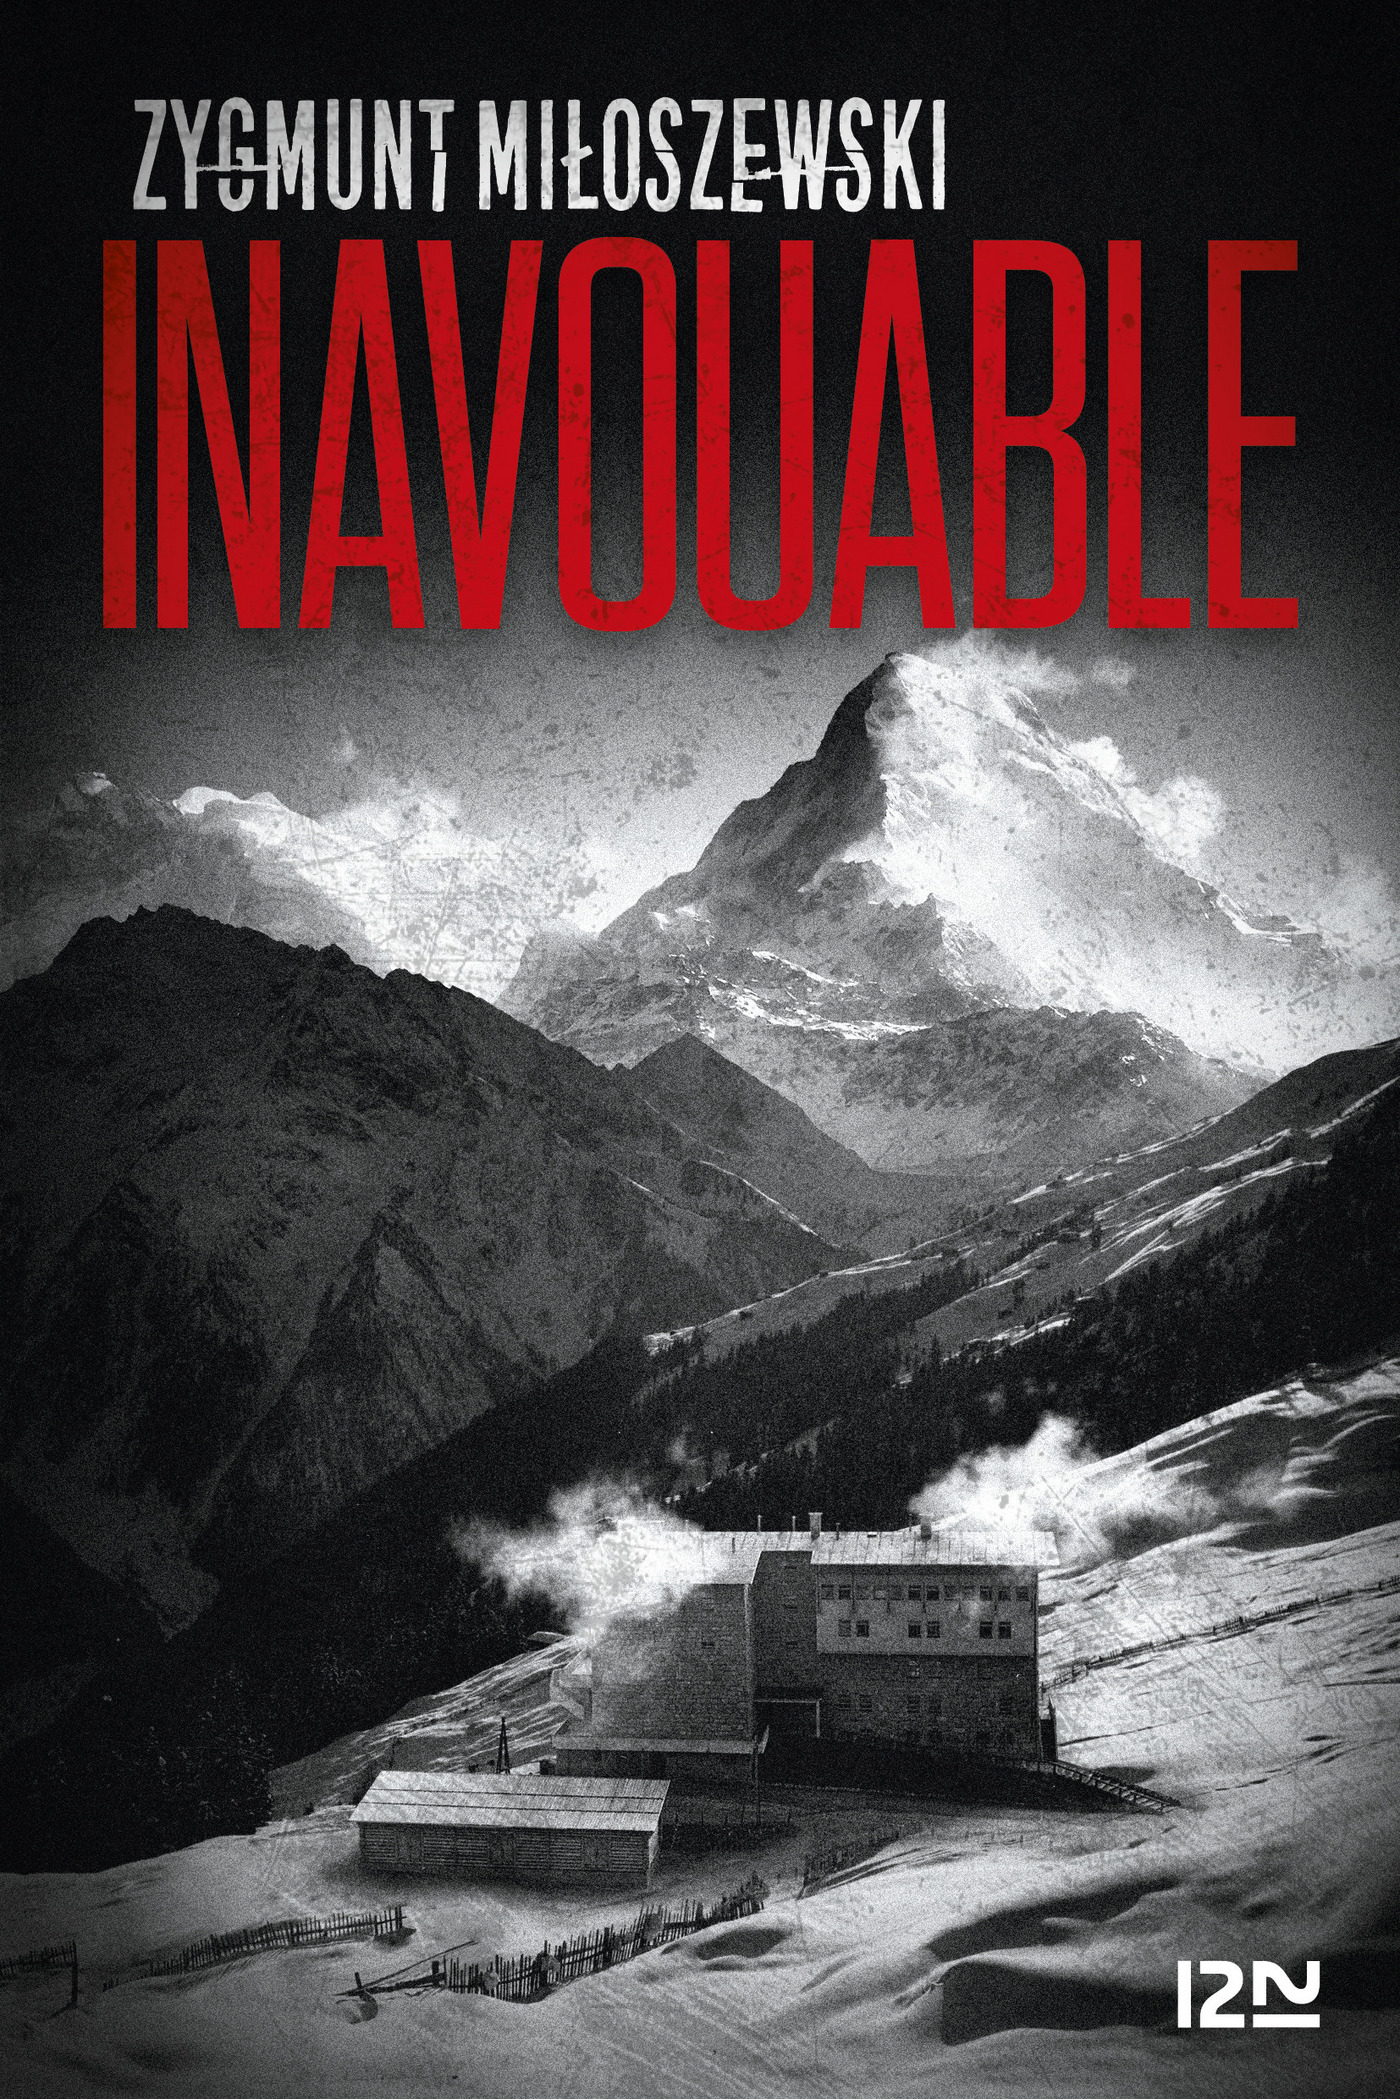 Inavouable |